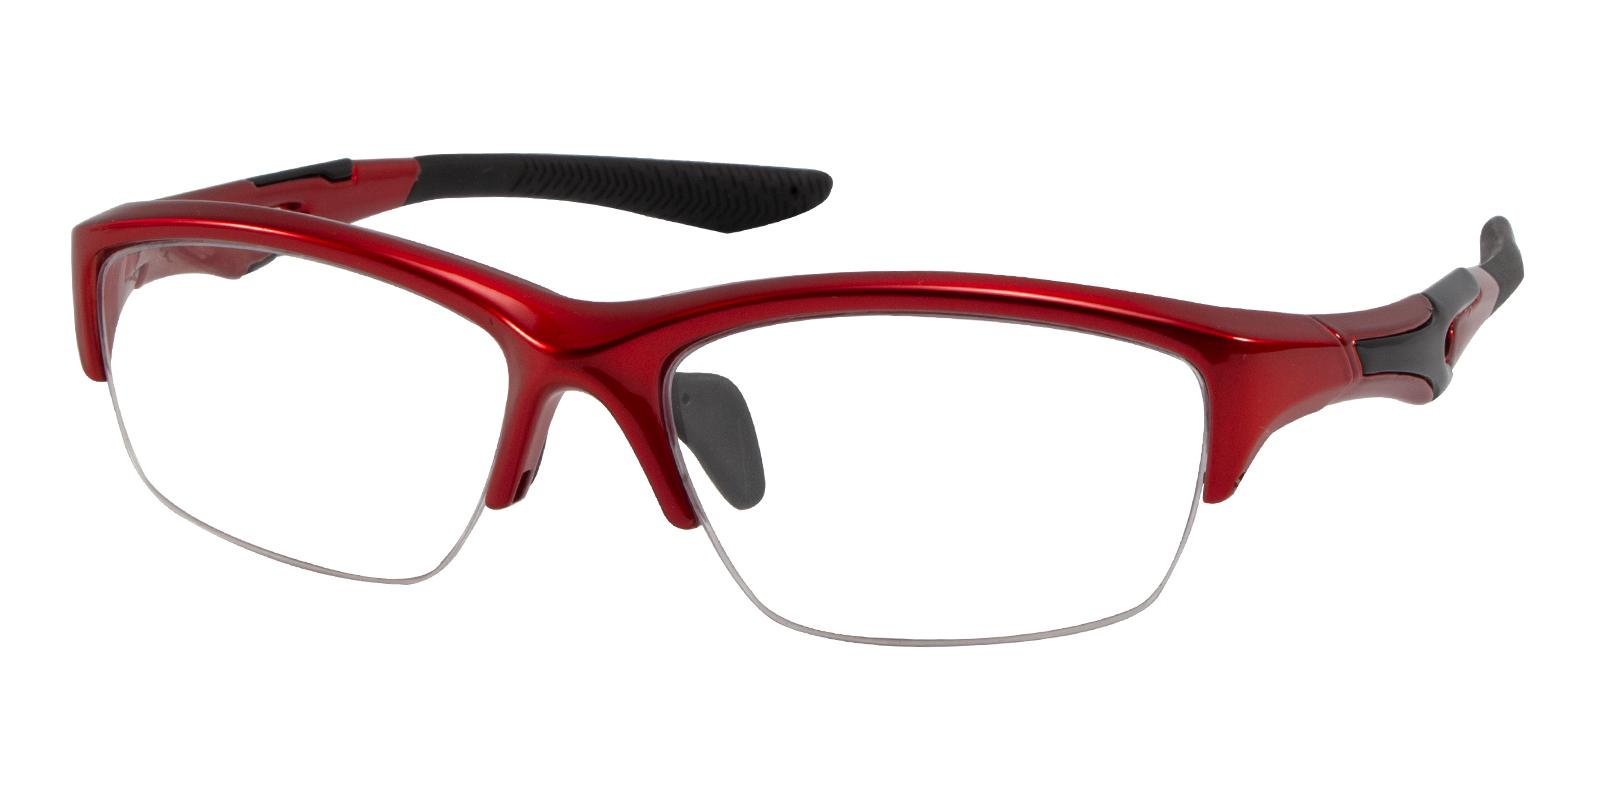 Voyager Red TR NosePads , SportsGlasses Frames from ABBE Glasses